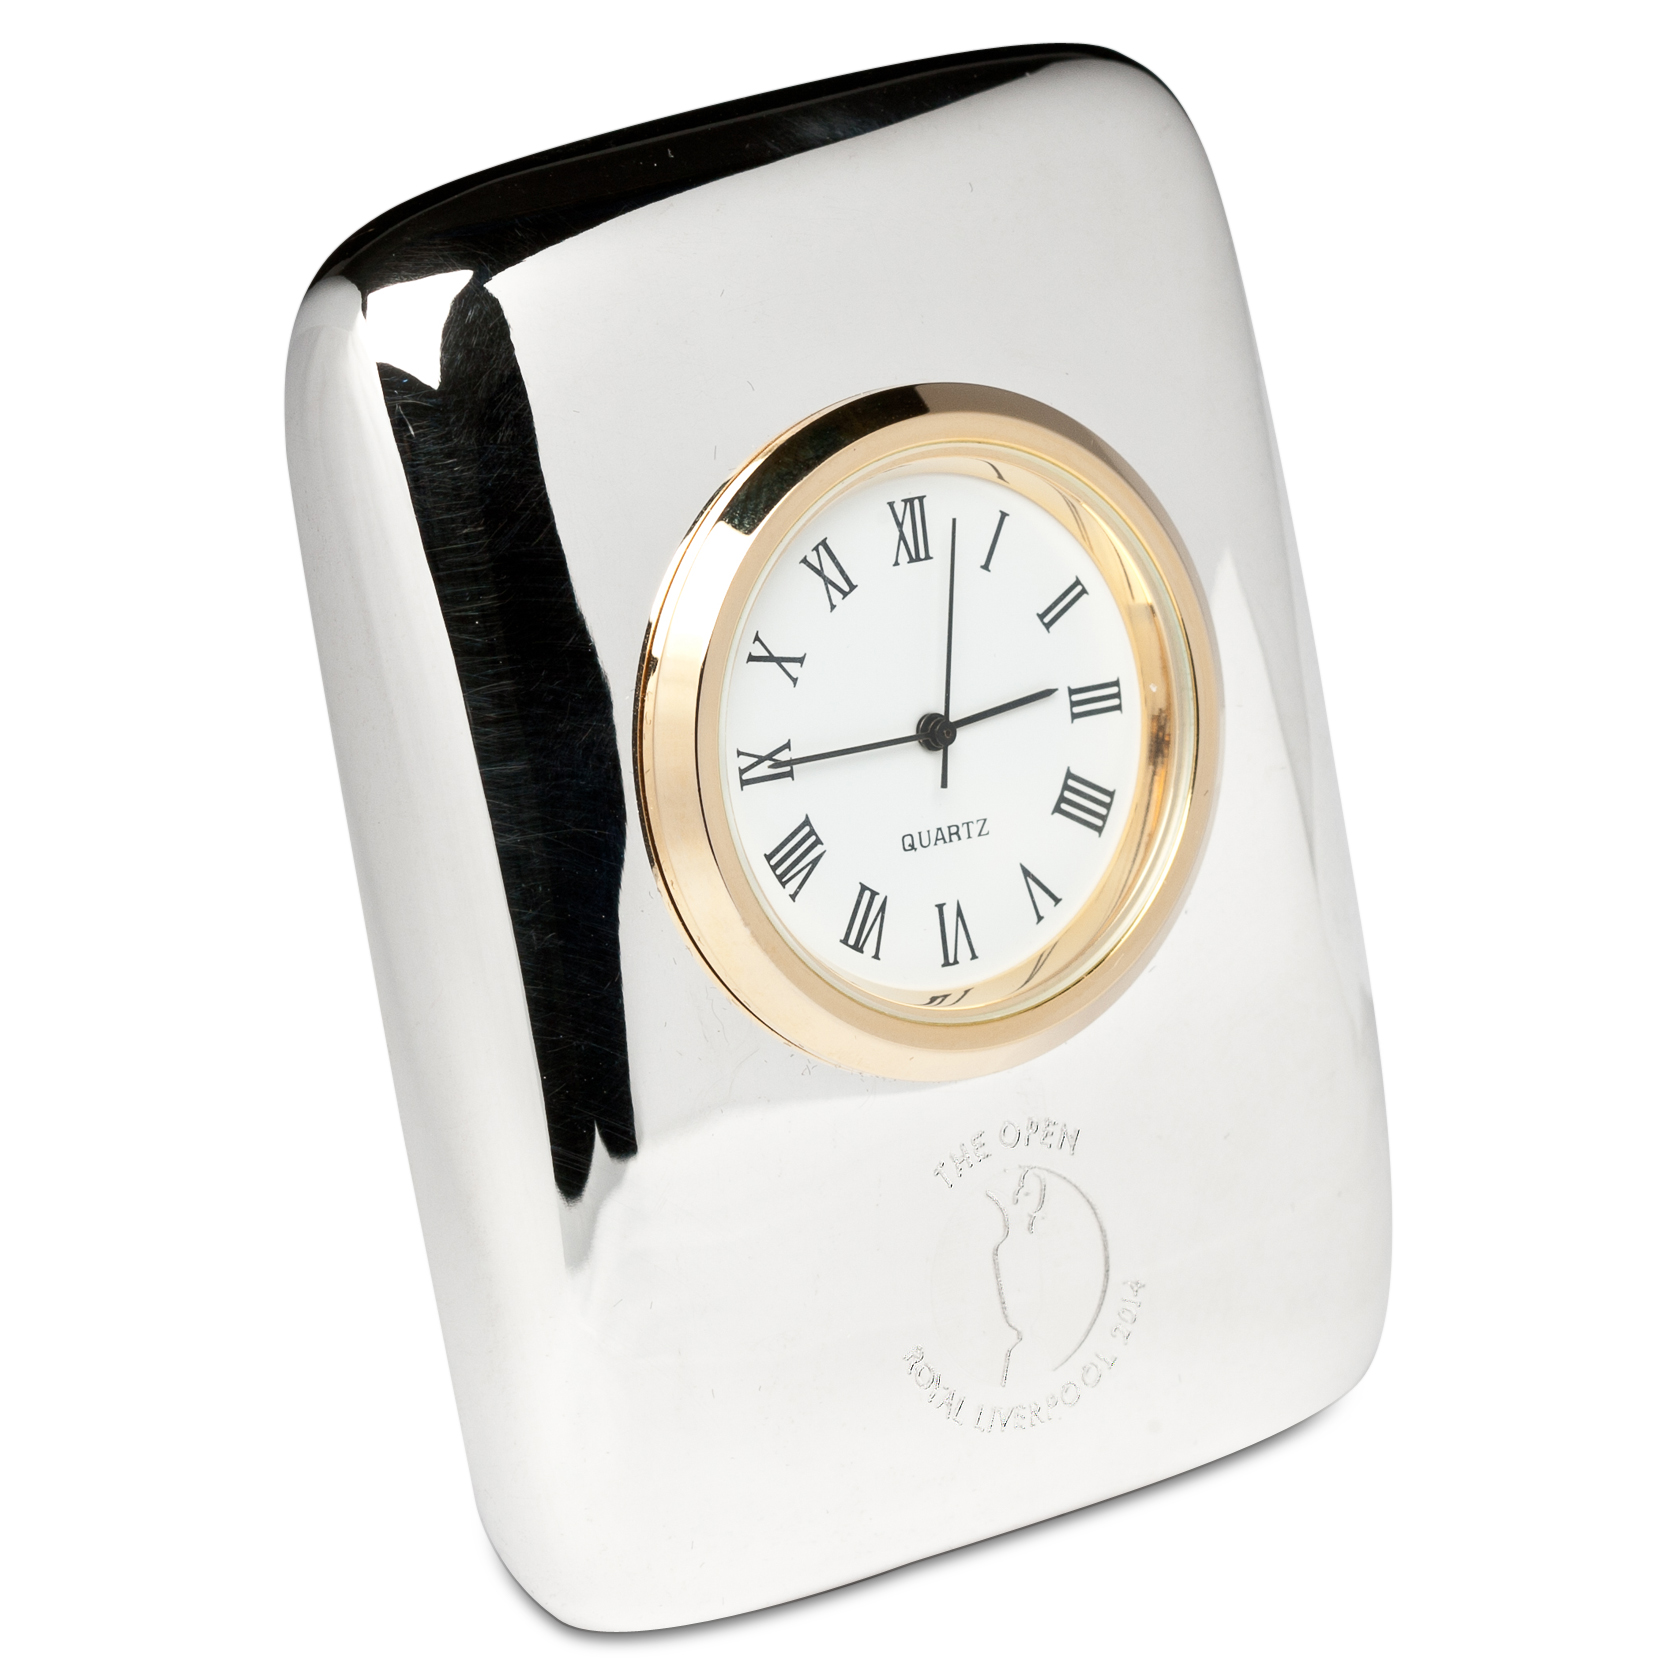 The Open Championship Royal Liverpool 2014 Small Clock